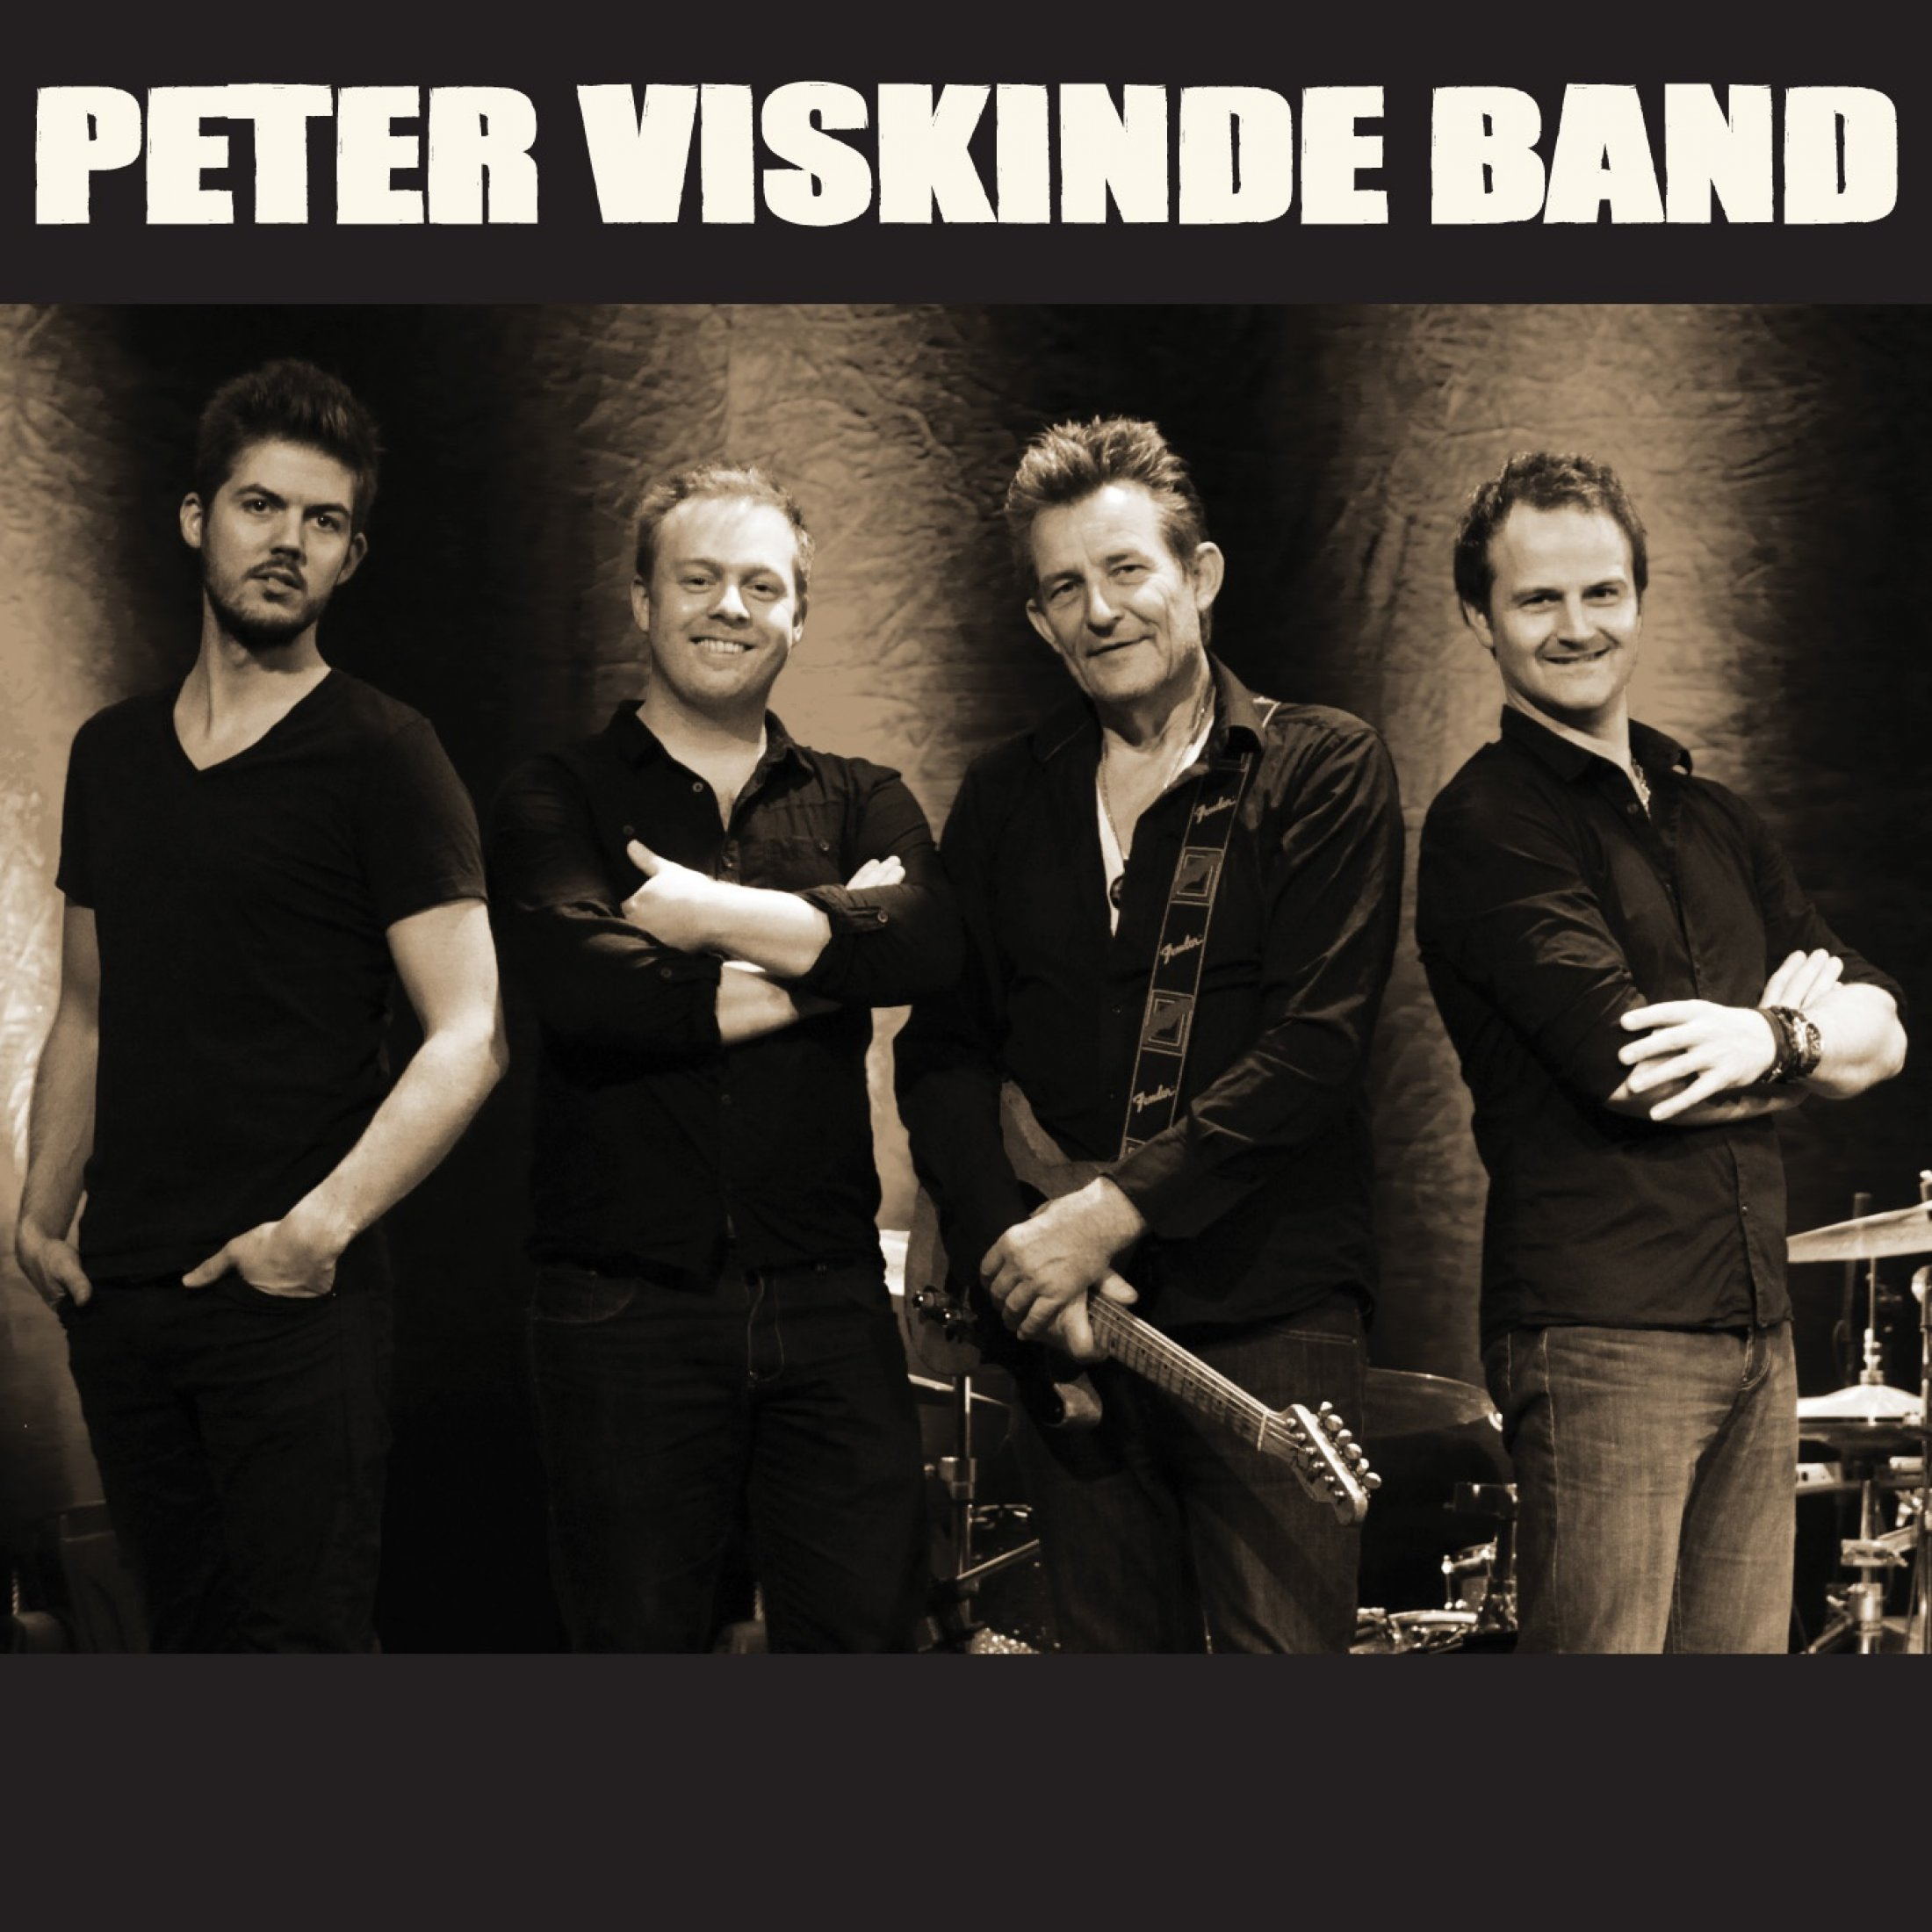 Peter Viskinde Band